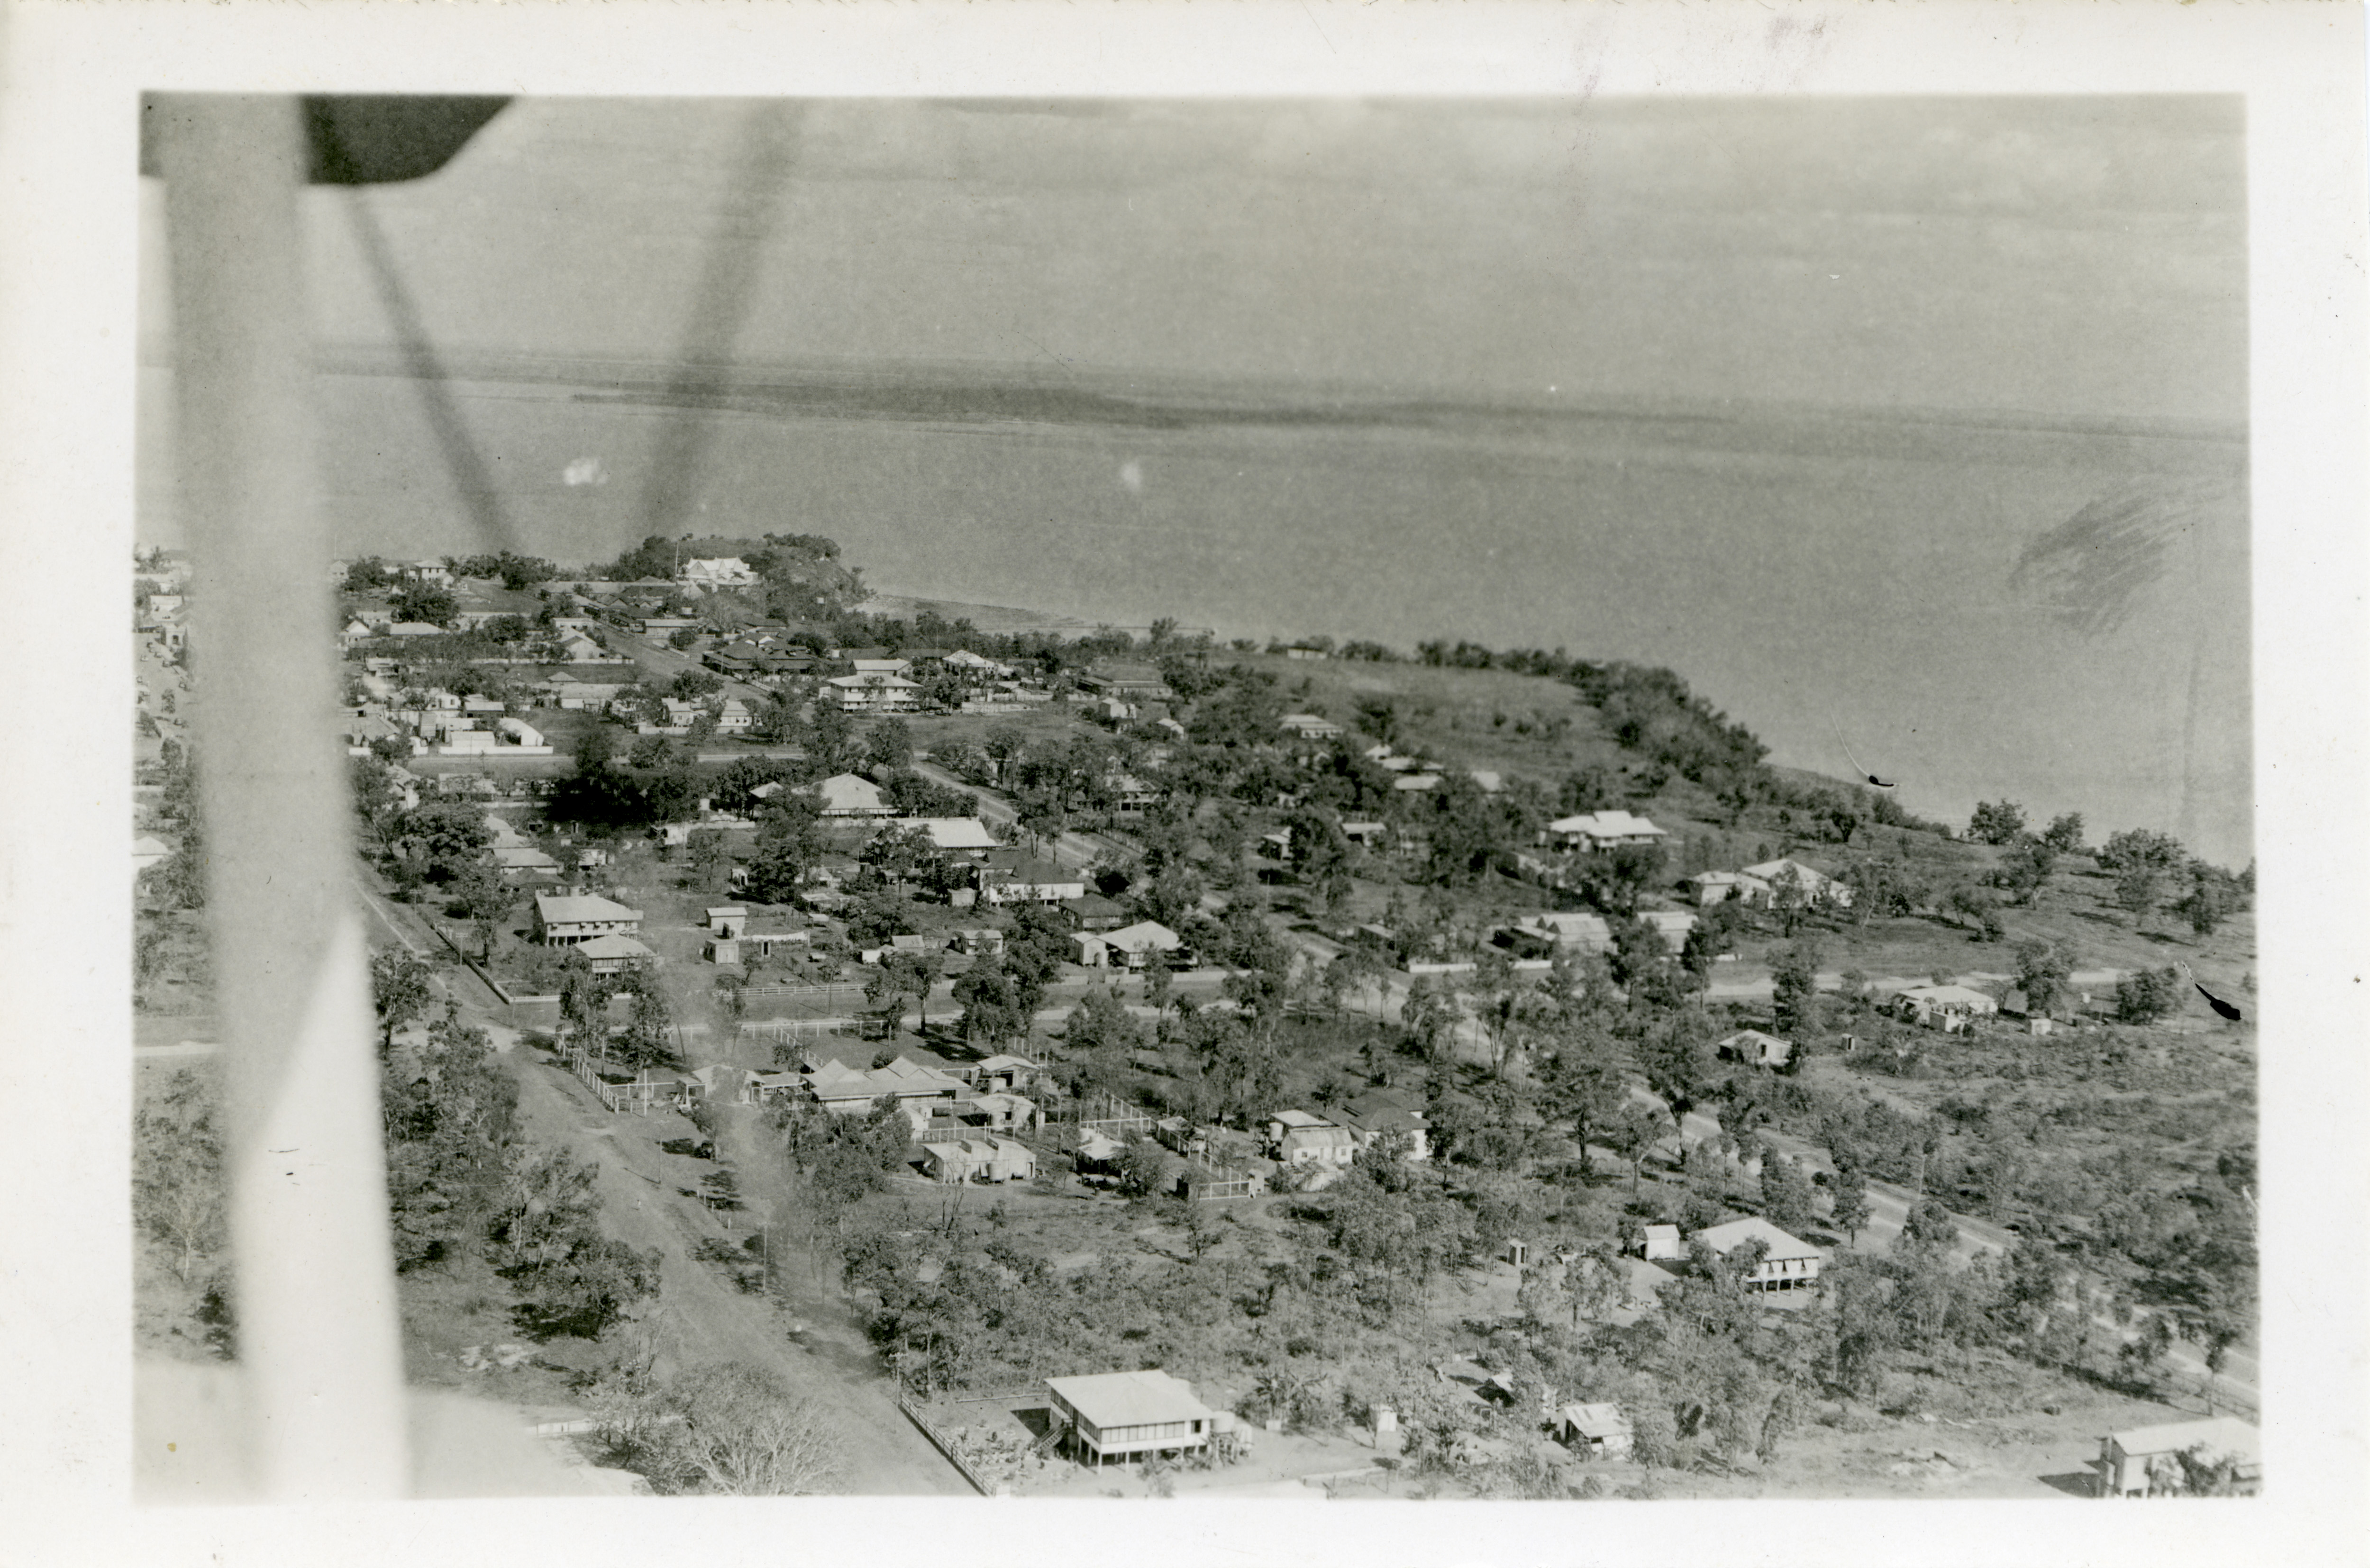 Aerial view of Darwin, date unknown possibly 1939, (postcard) Fort Hill clearly shown.